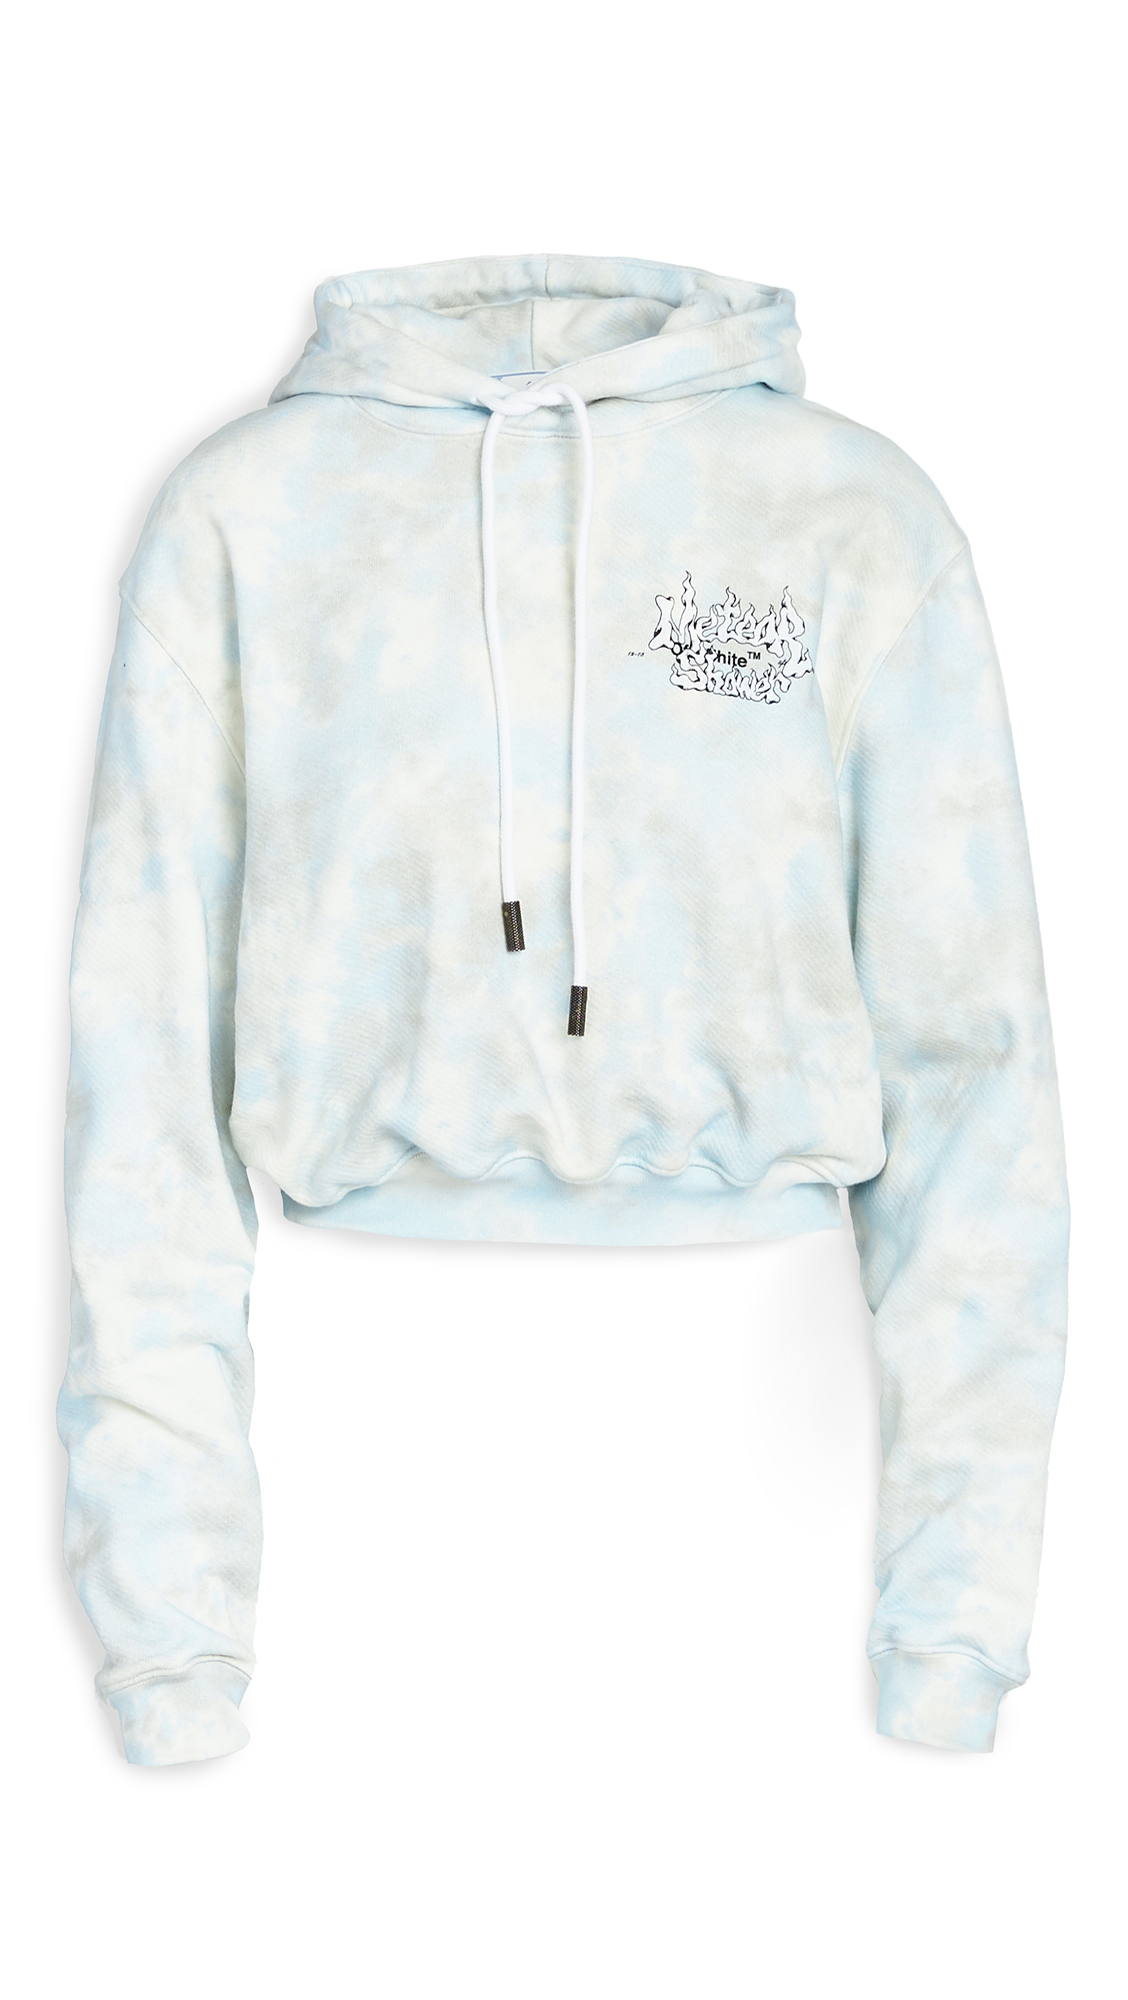 Photo of Off-White Meteor Shower Cropped Hoodie - shop Off-White Clothing, Shirts, Tops online